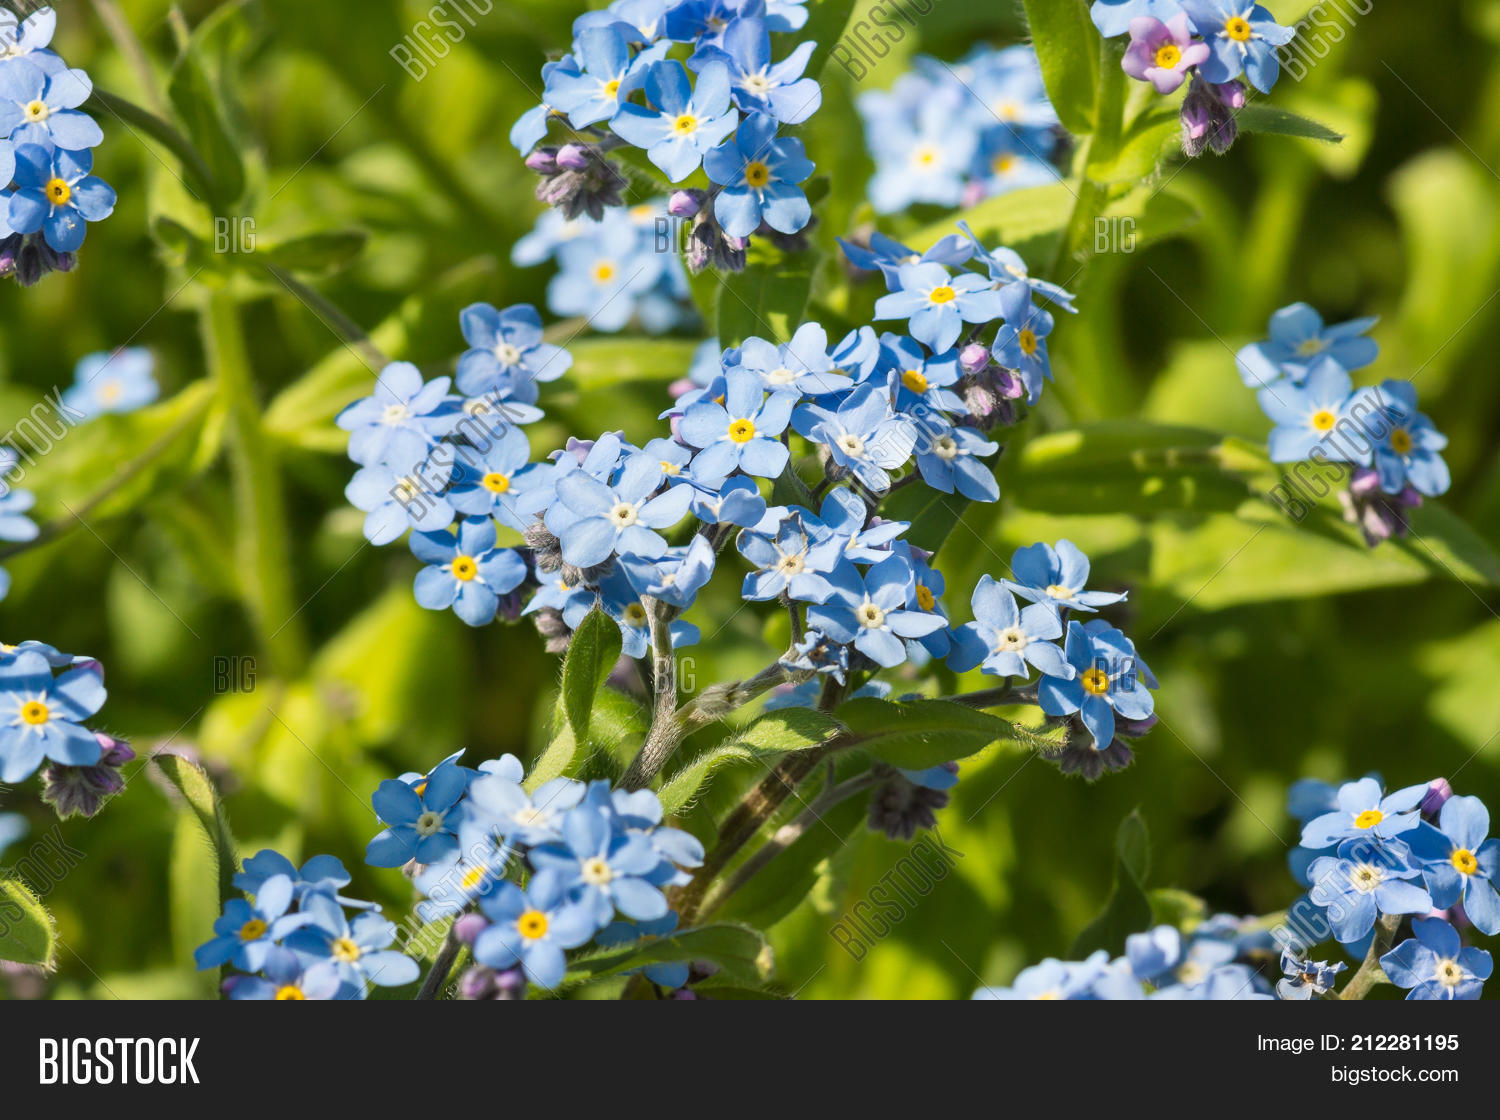 Delicate Blue Flowers Image Photo Free Trial Bigstock